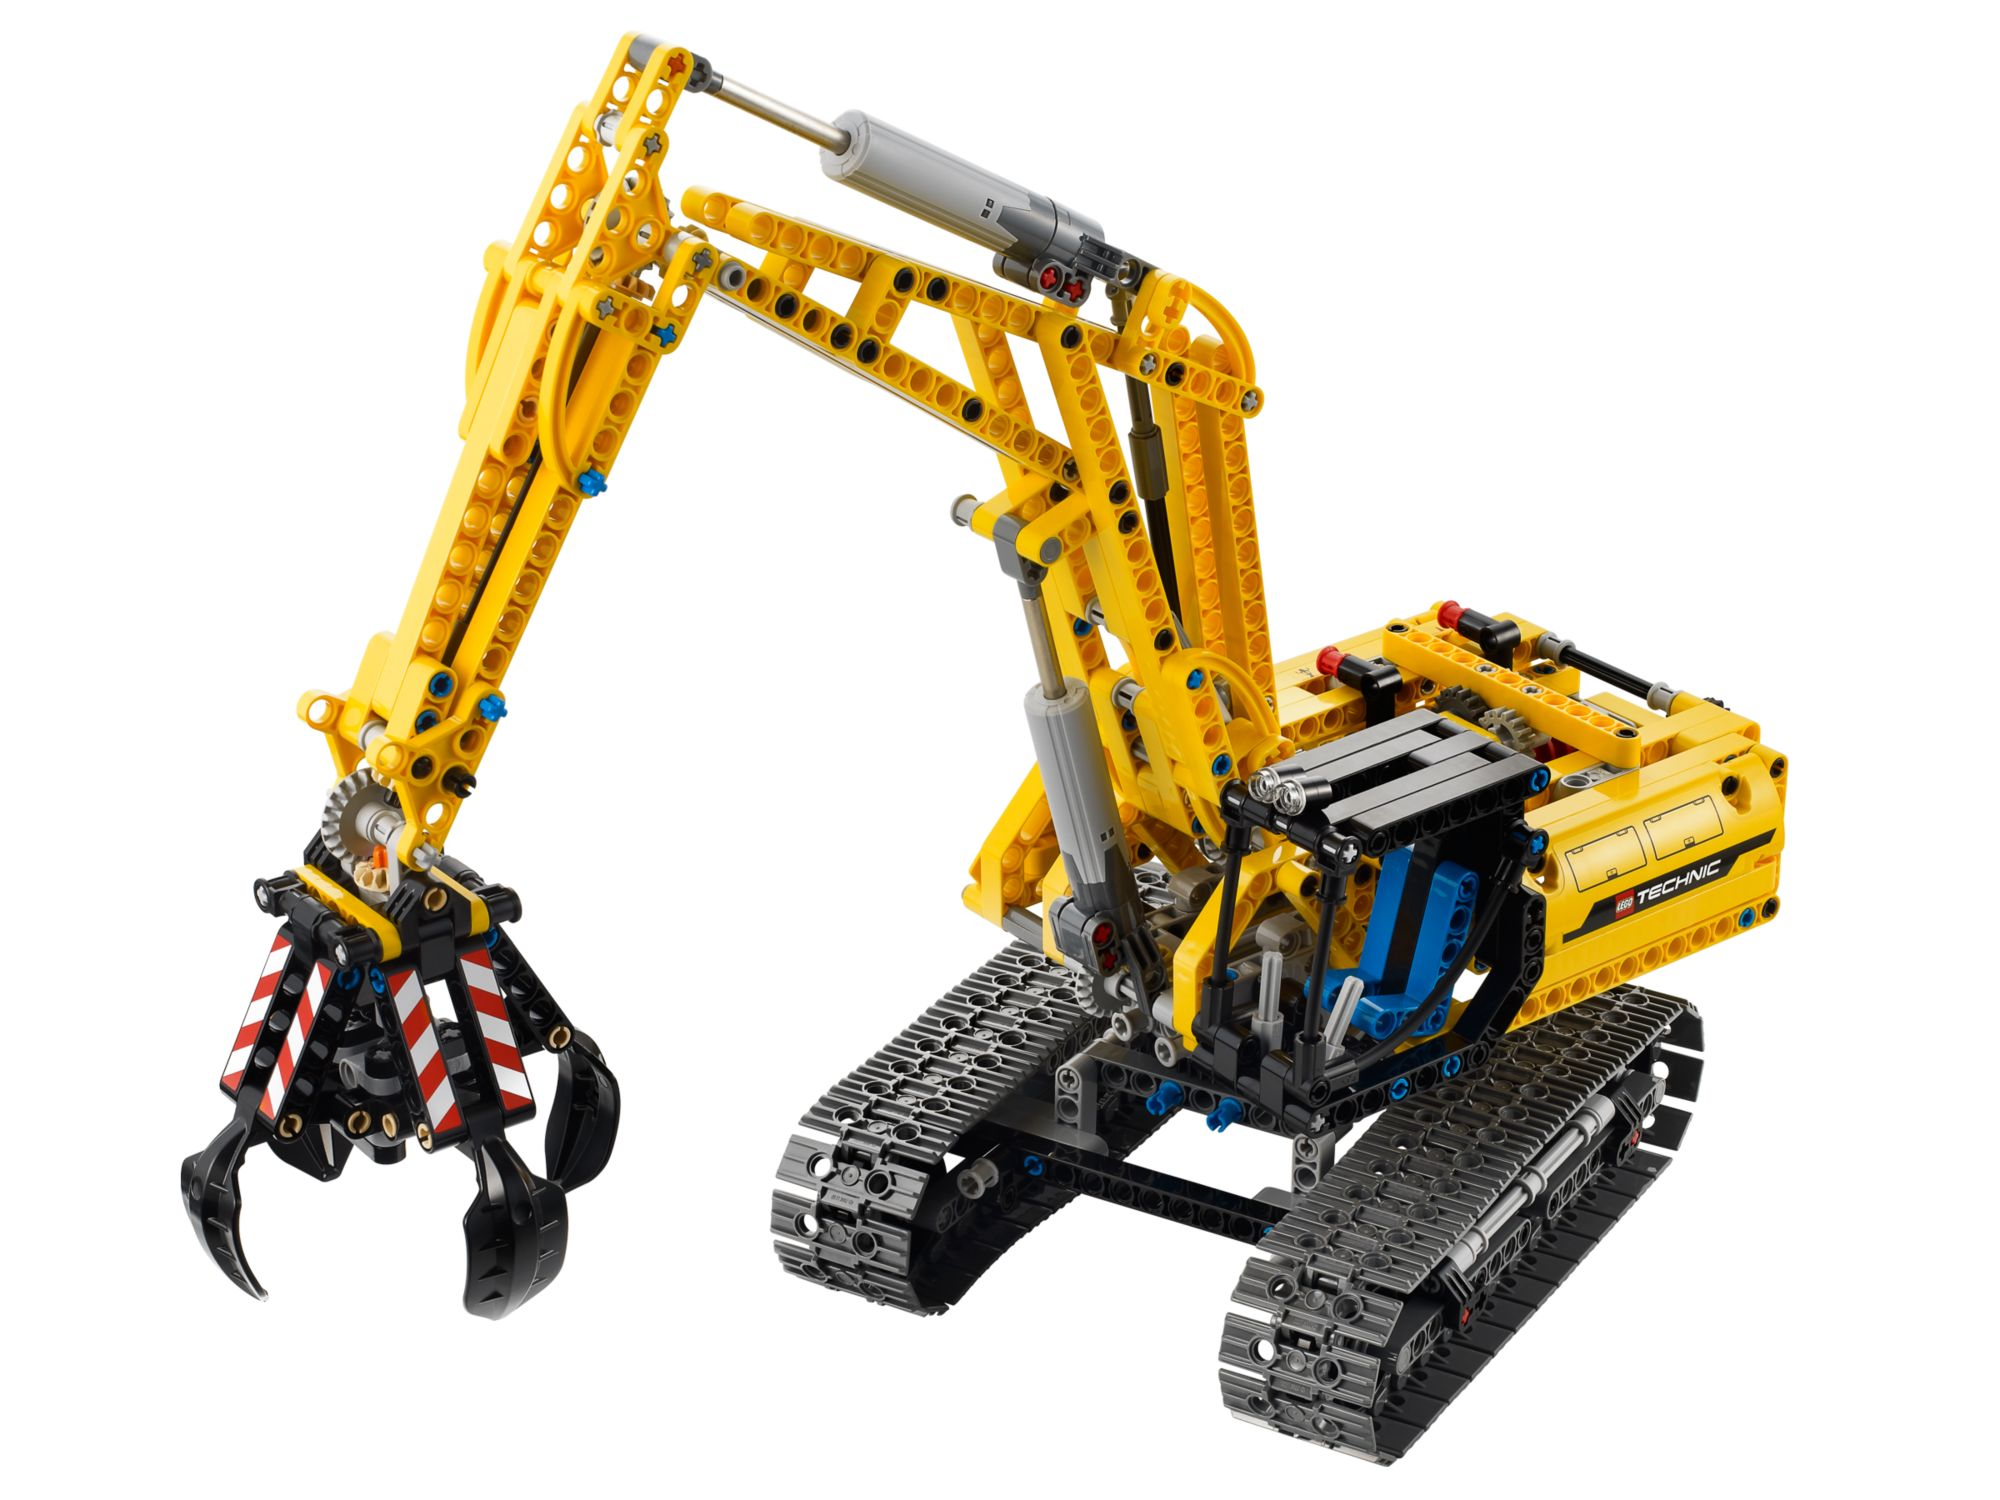 lego 42006 lego technic excavator toymania lego online shop. Black Bedroom Furniture Sets. Home Design Ideas